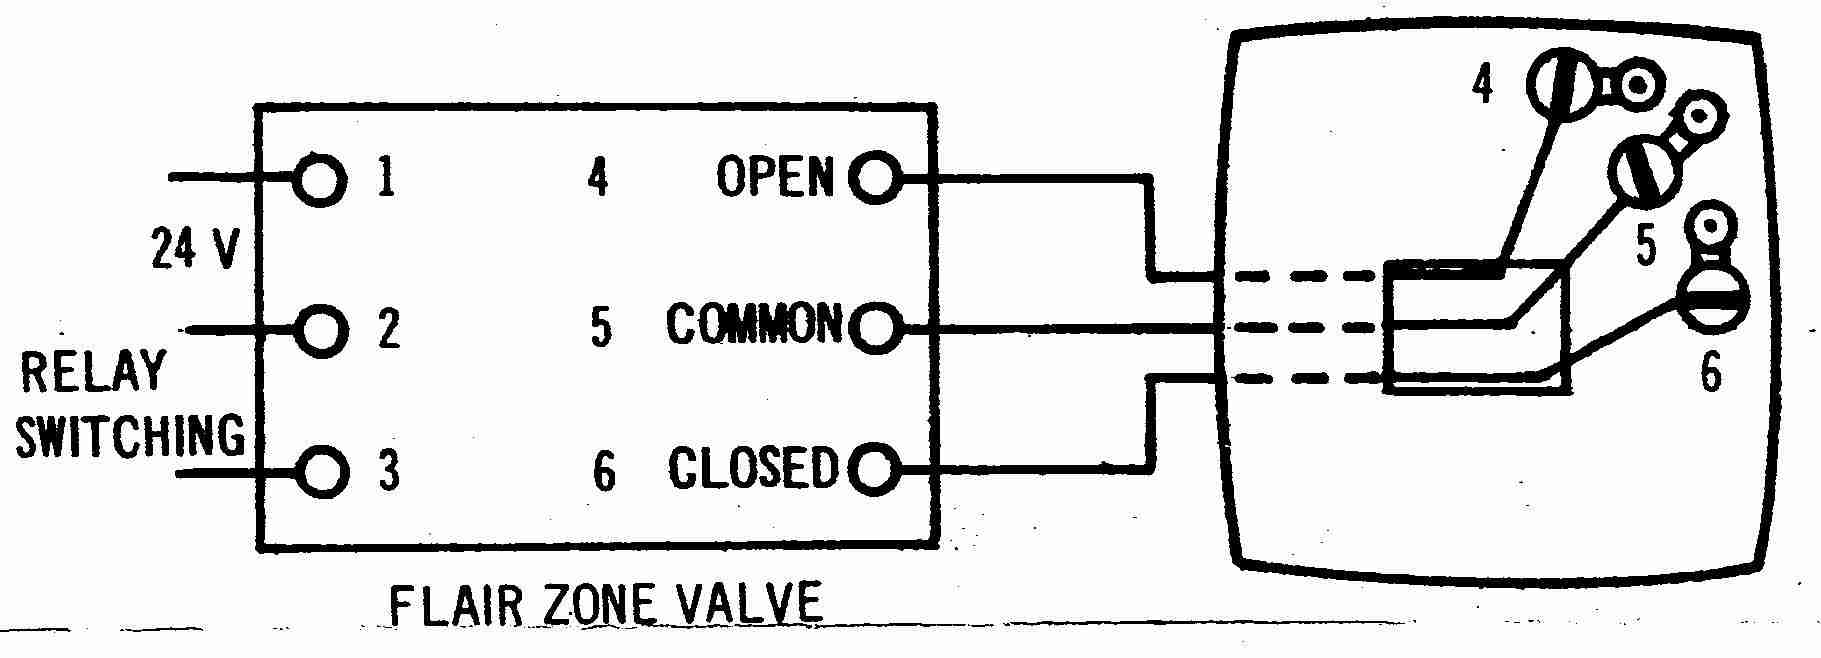 Flair3w_001_DJFc2 zone valve wiring installation & instructions guide to heating honeywell zone control wiring diagram at crackthecode.co